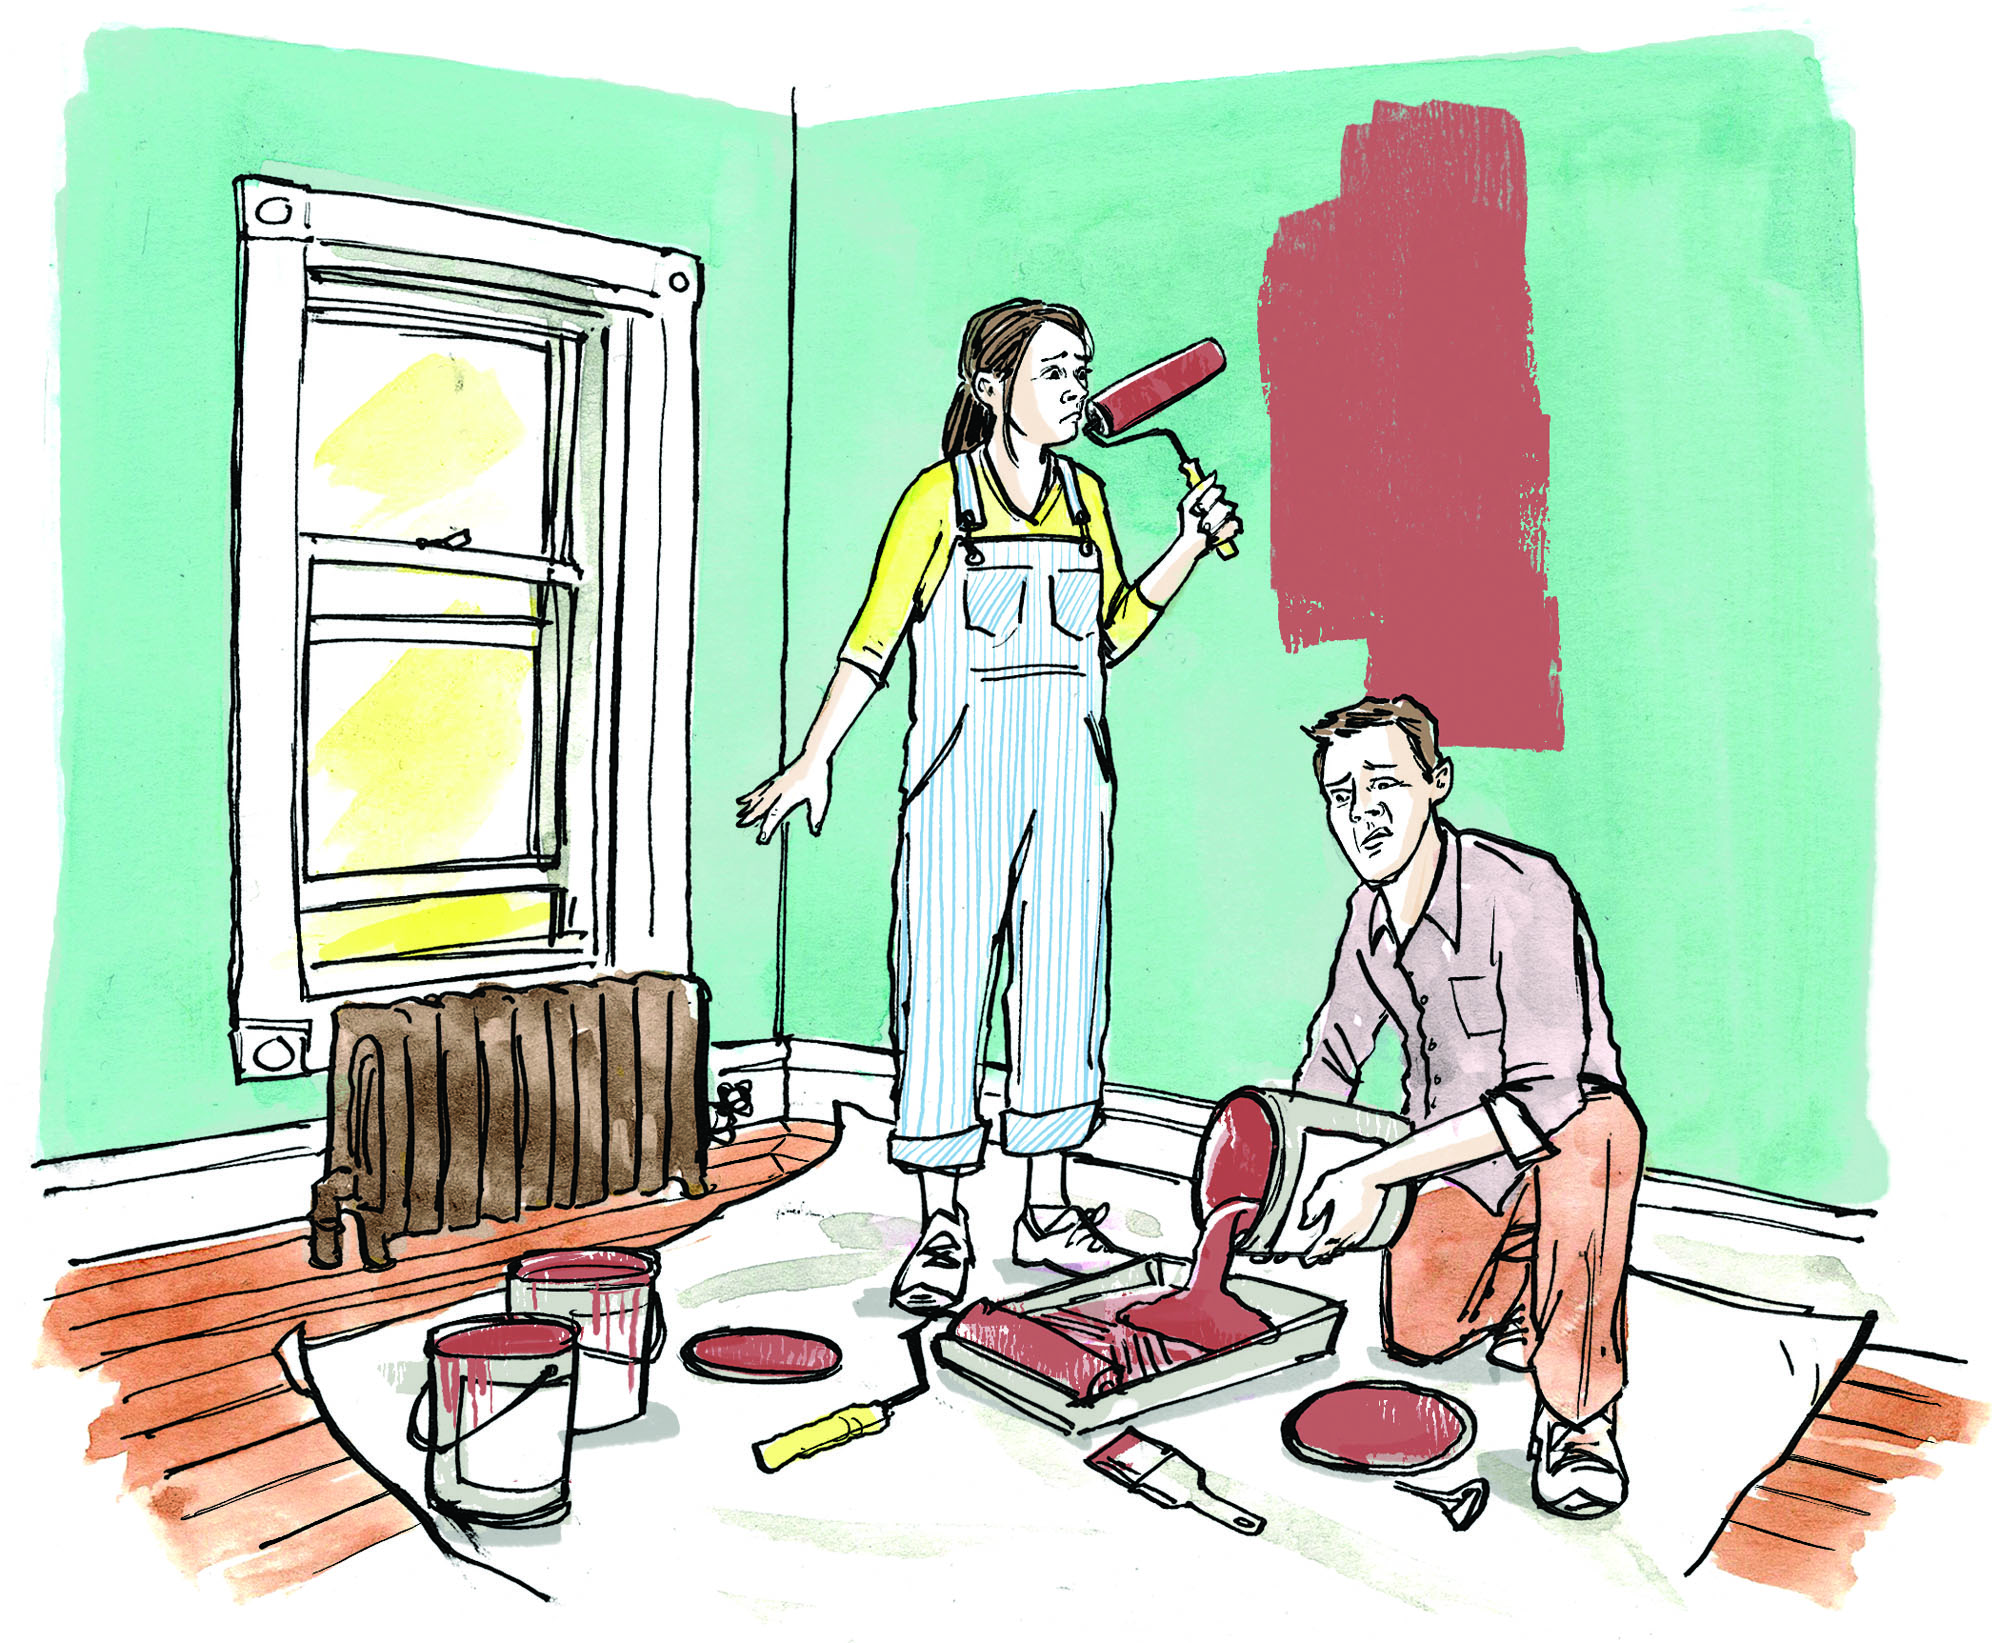 a fix for stinky paint